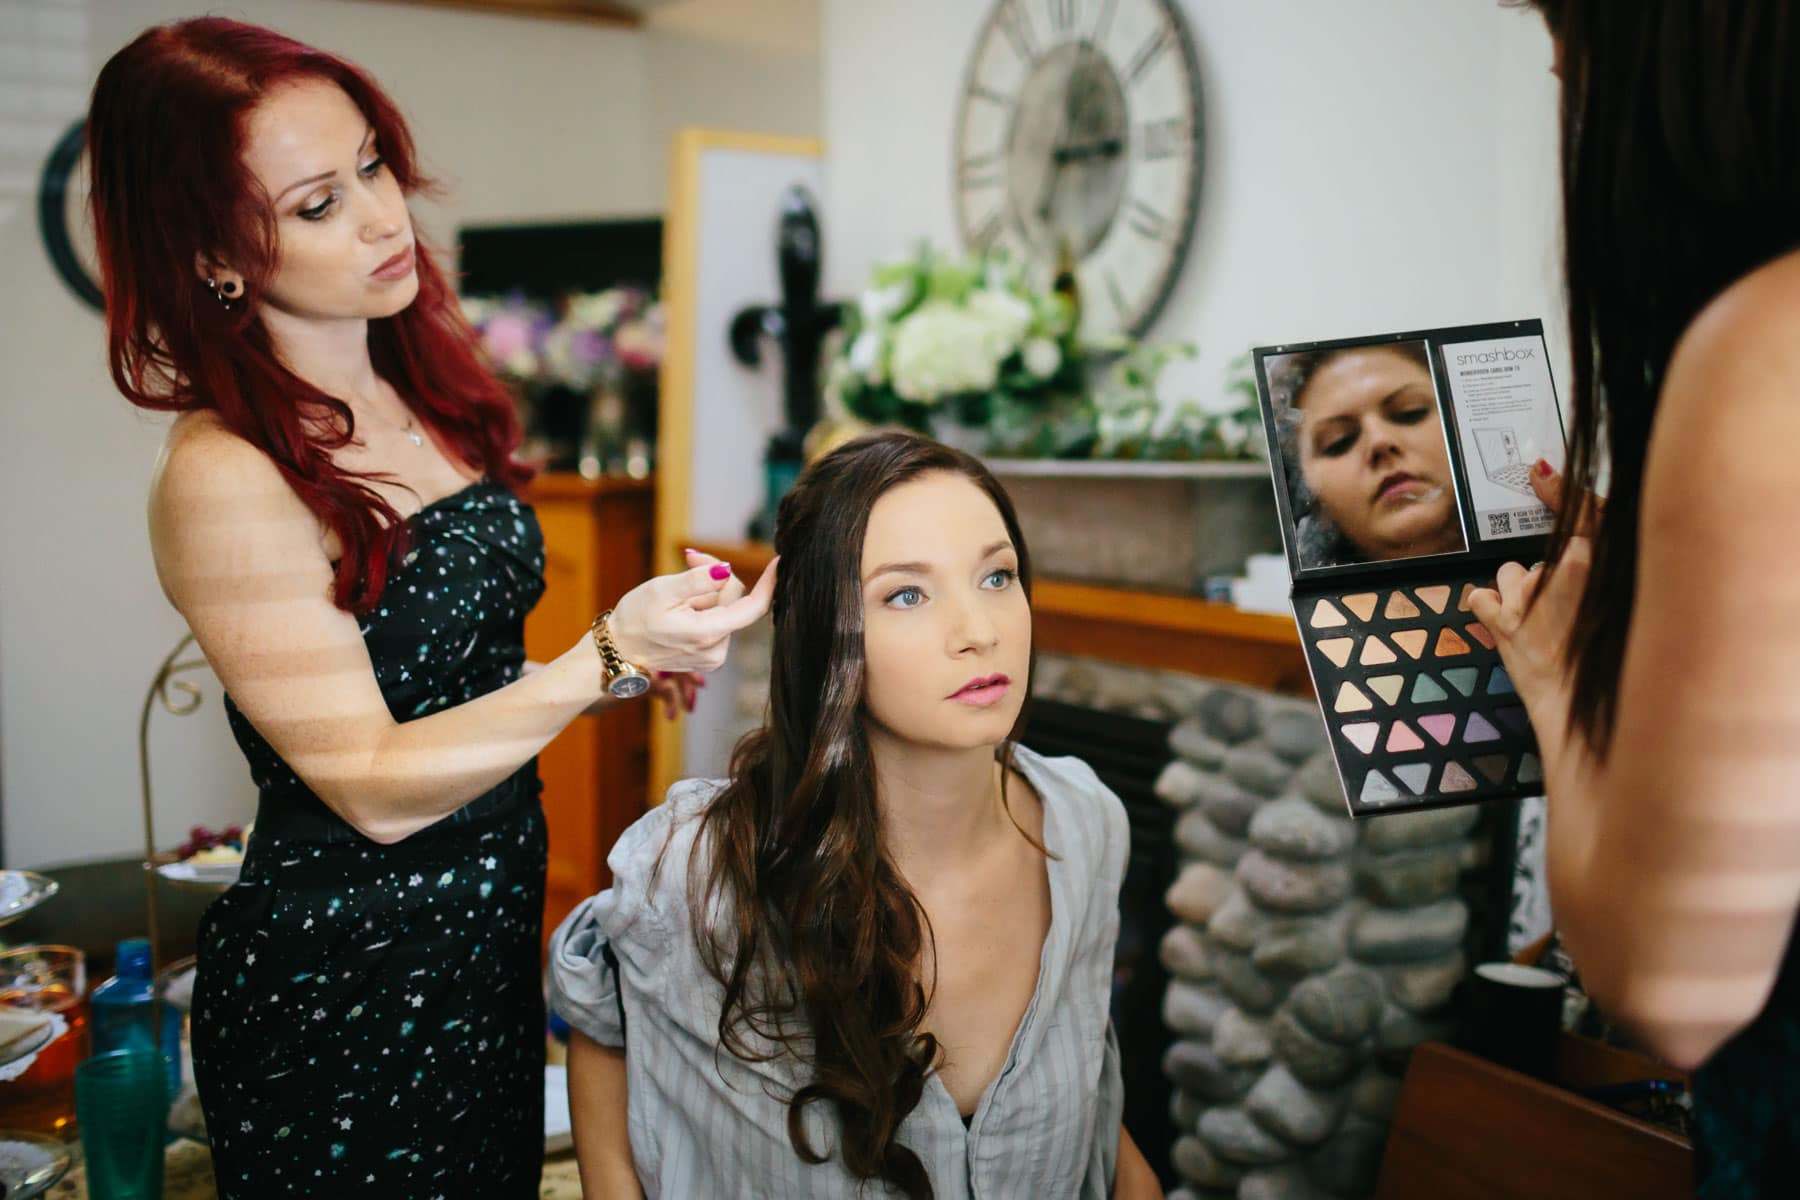 Bride's makeup being applied and hair being done in this rustic Ball's Falls wedding.